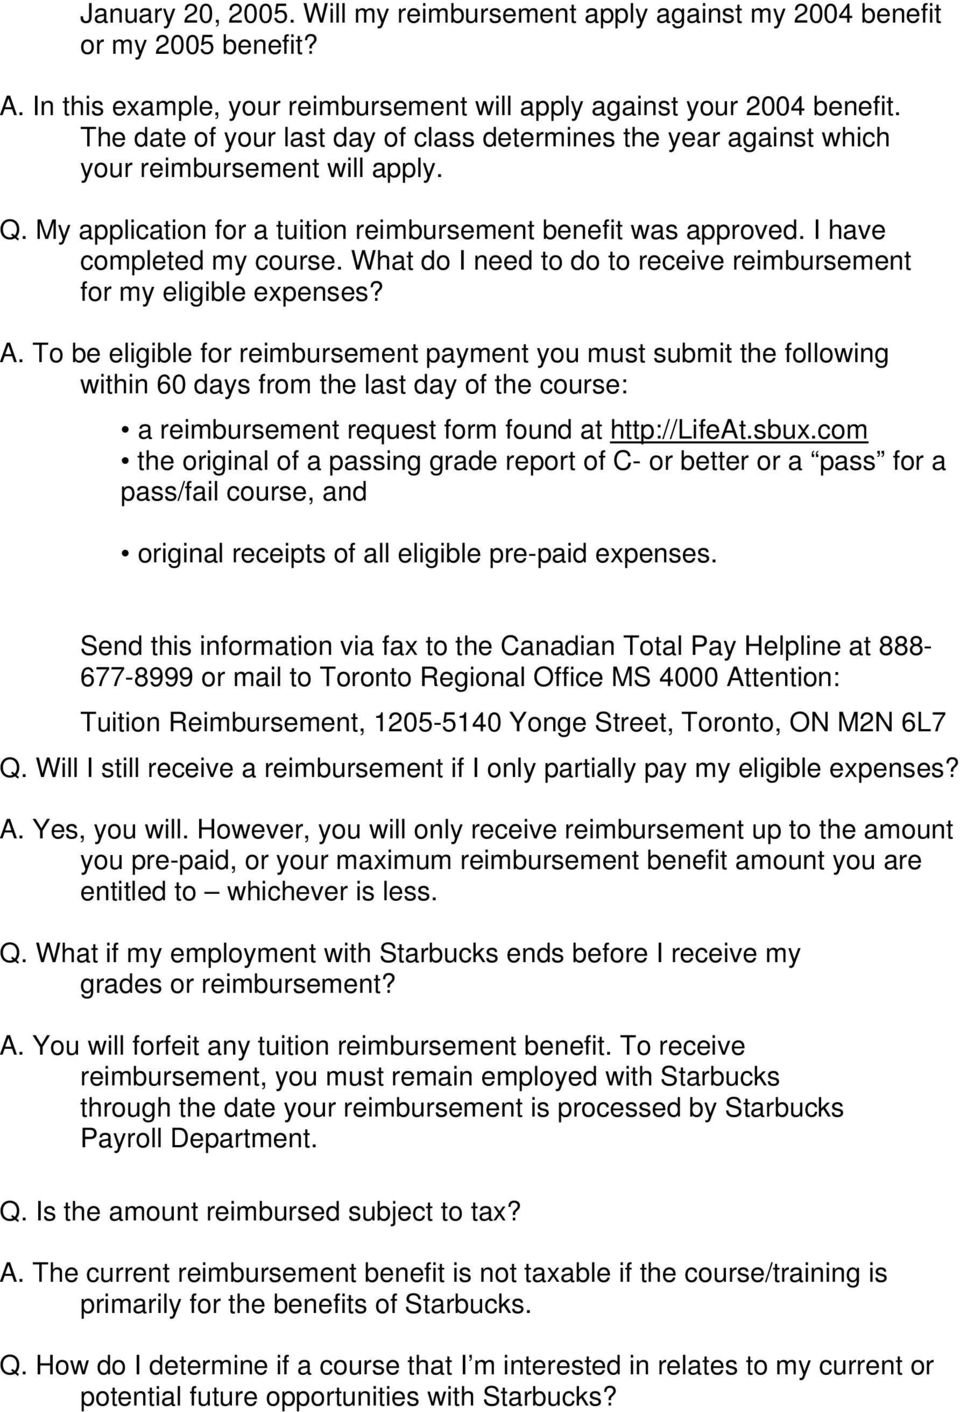 starbucks canada application form pdf